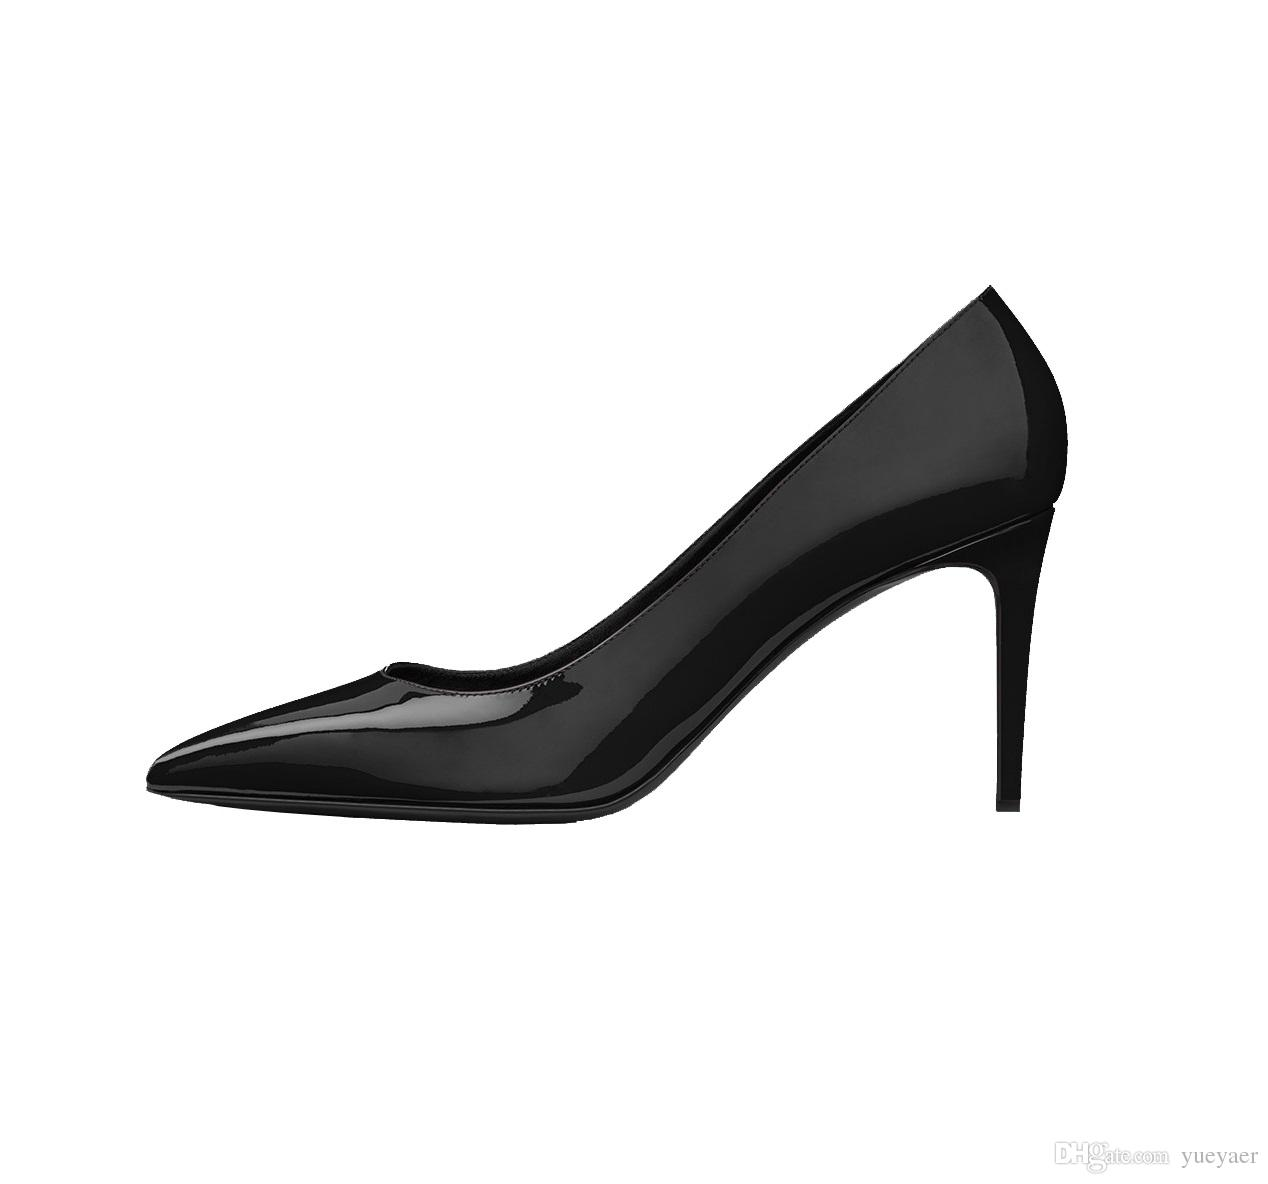 Zandina Womens Fashion Handmade Classic Pairs 80mm High Heel Escarpin Pumps Slip-on Pointed Toe Office Party Shoes Black Z62616